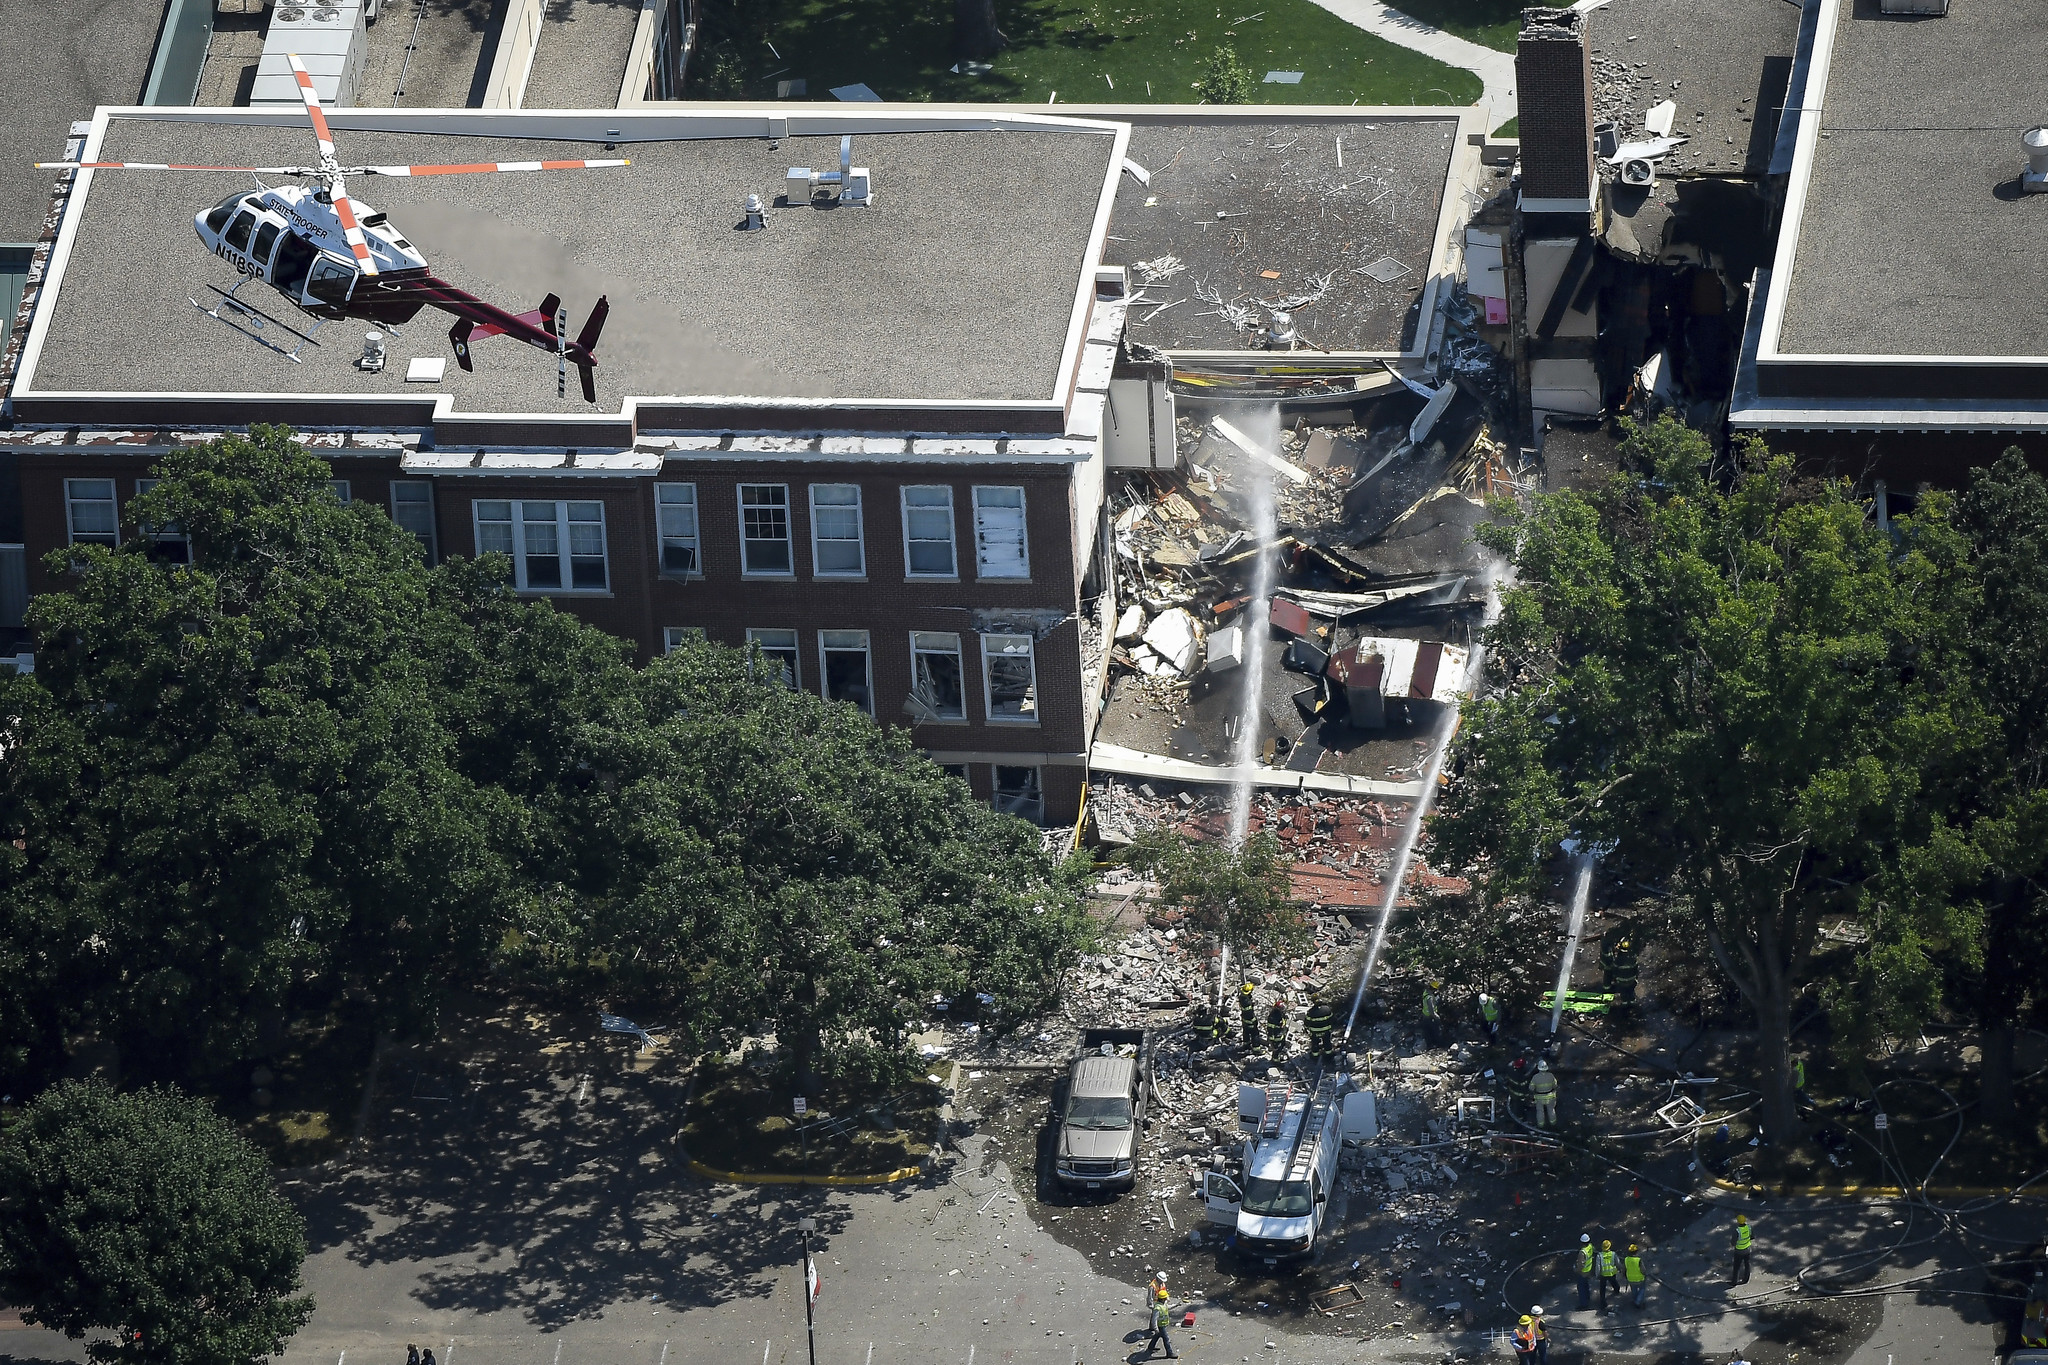 Ntsb Father Son Team Was Moving Gas Meter At Time Of